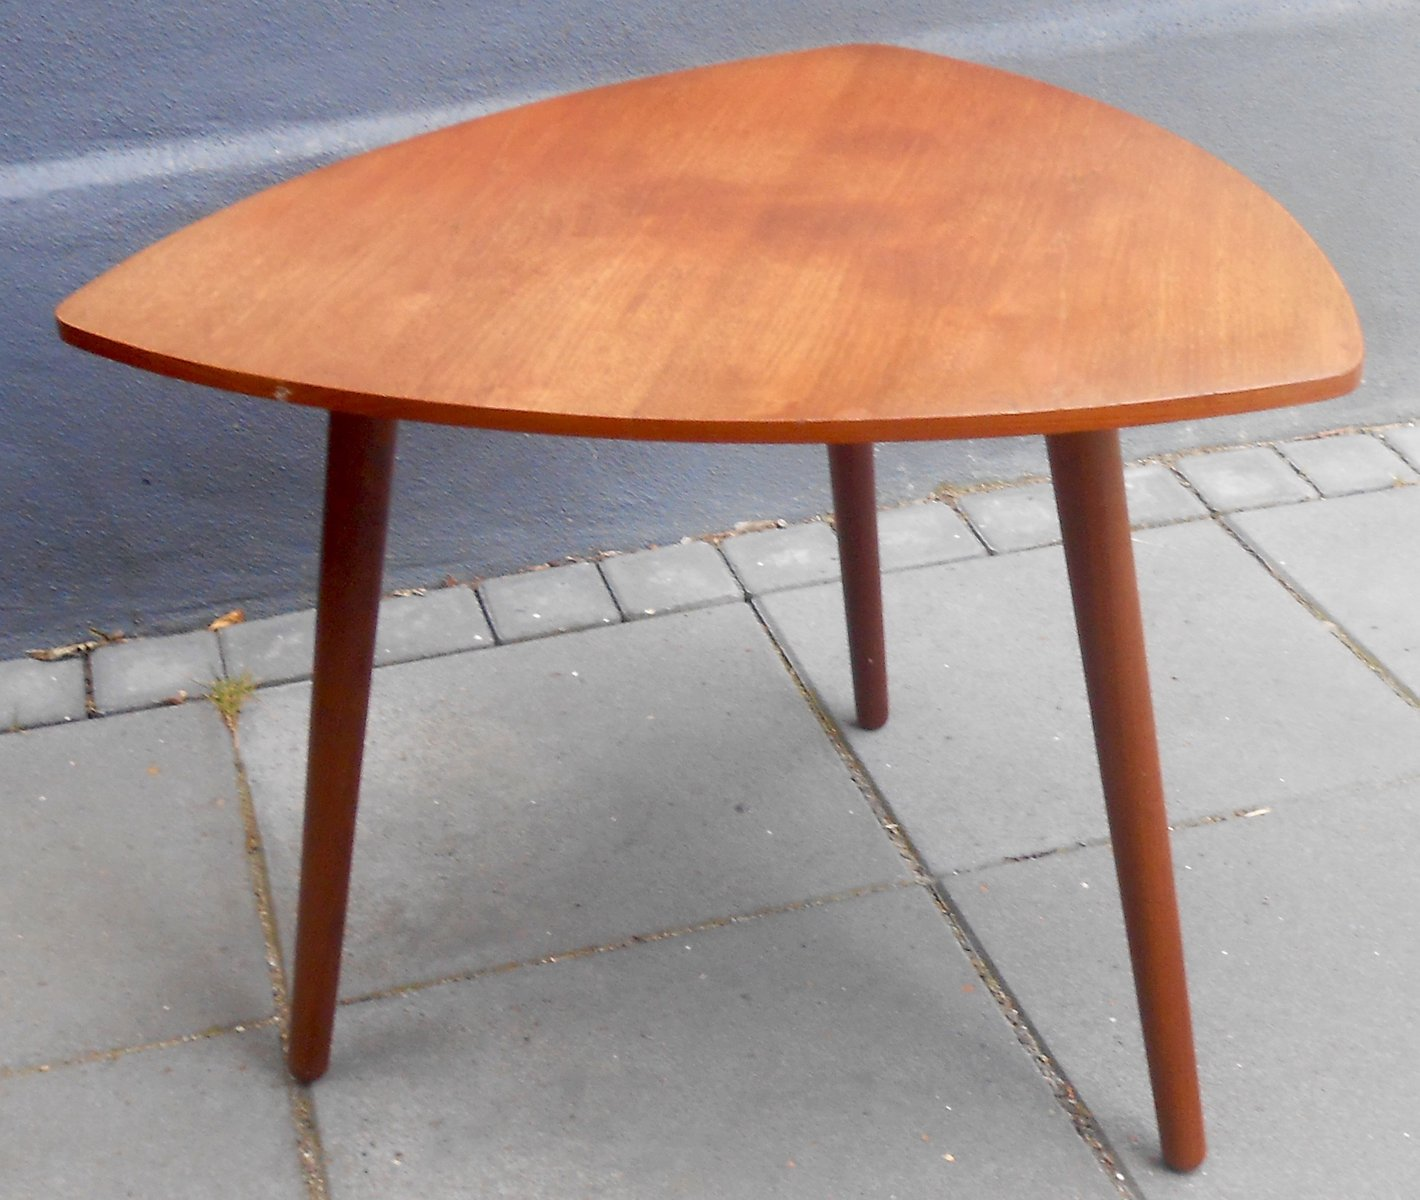 Danish Triangular Guitar Pick Shaped Teak Coffee Table From Mcm 1960s For Sale At Pamono